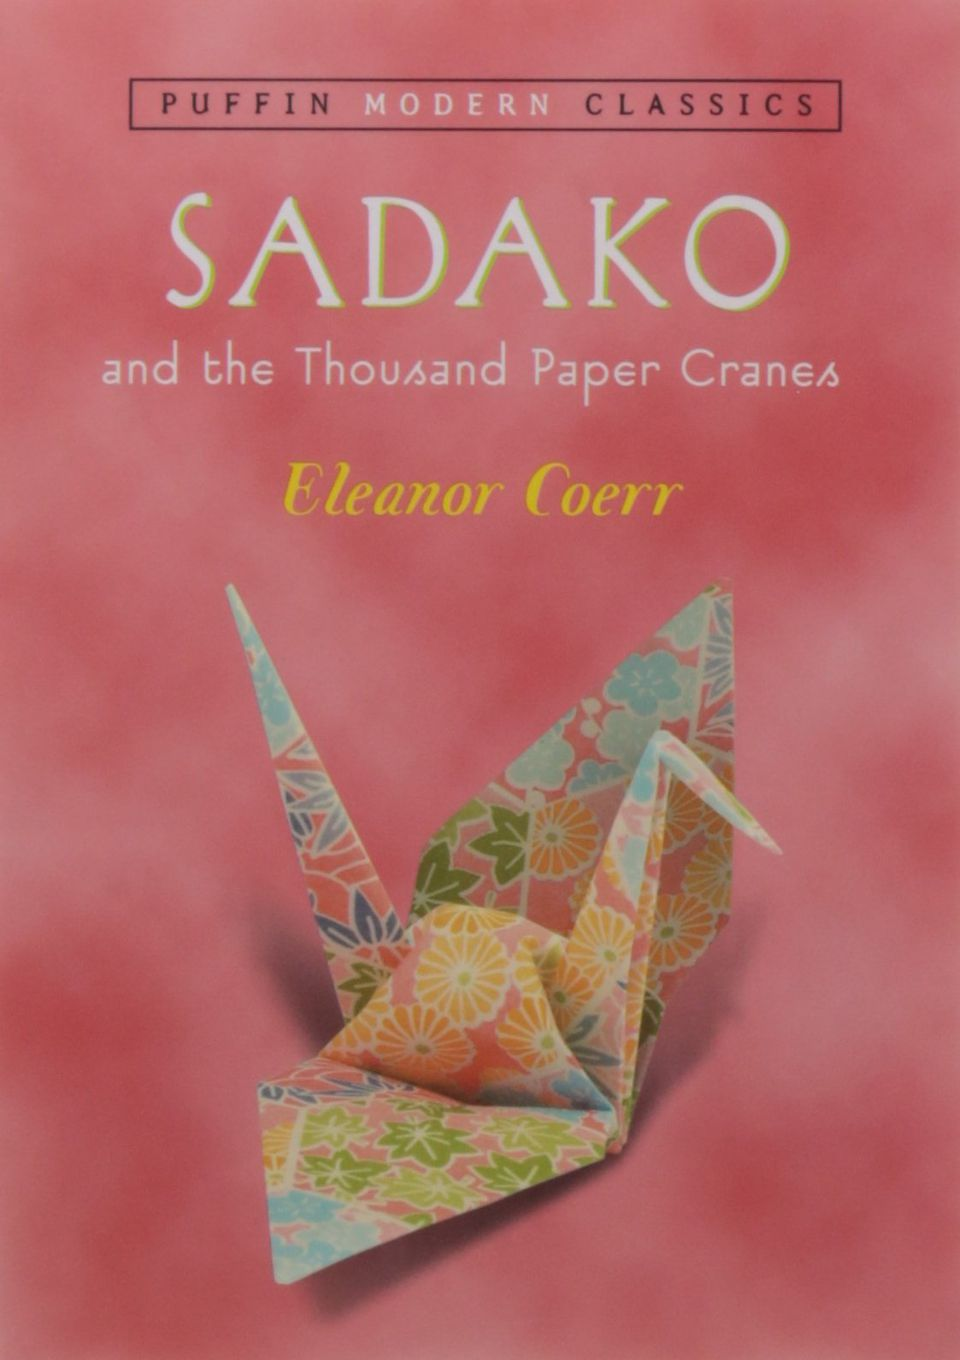 sadako and the thousand paper cranes activities Sadako and the thousand paper cranes activities sadako and the 1000 paper cranes eleanor coerr ronald himler on amazoncom free shipping on qualifying offers hiroshima born sadako is lively and athletic the star of her schools.